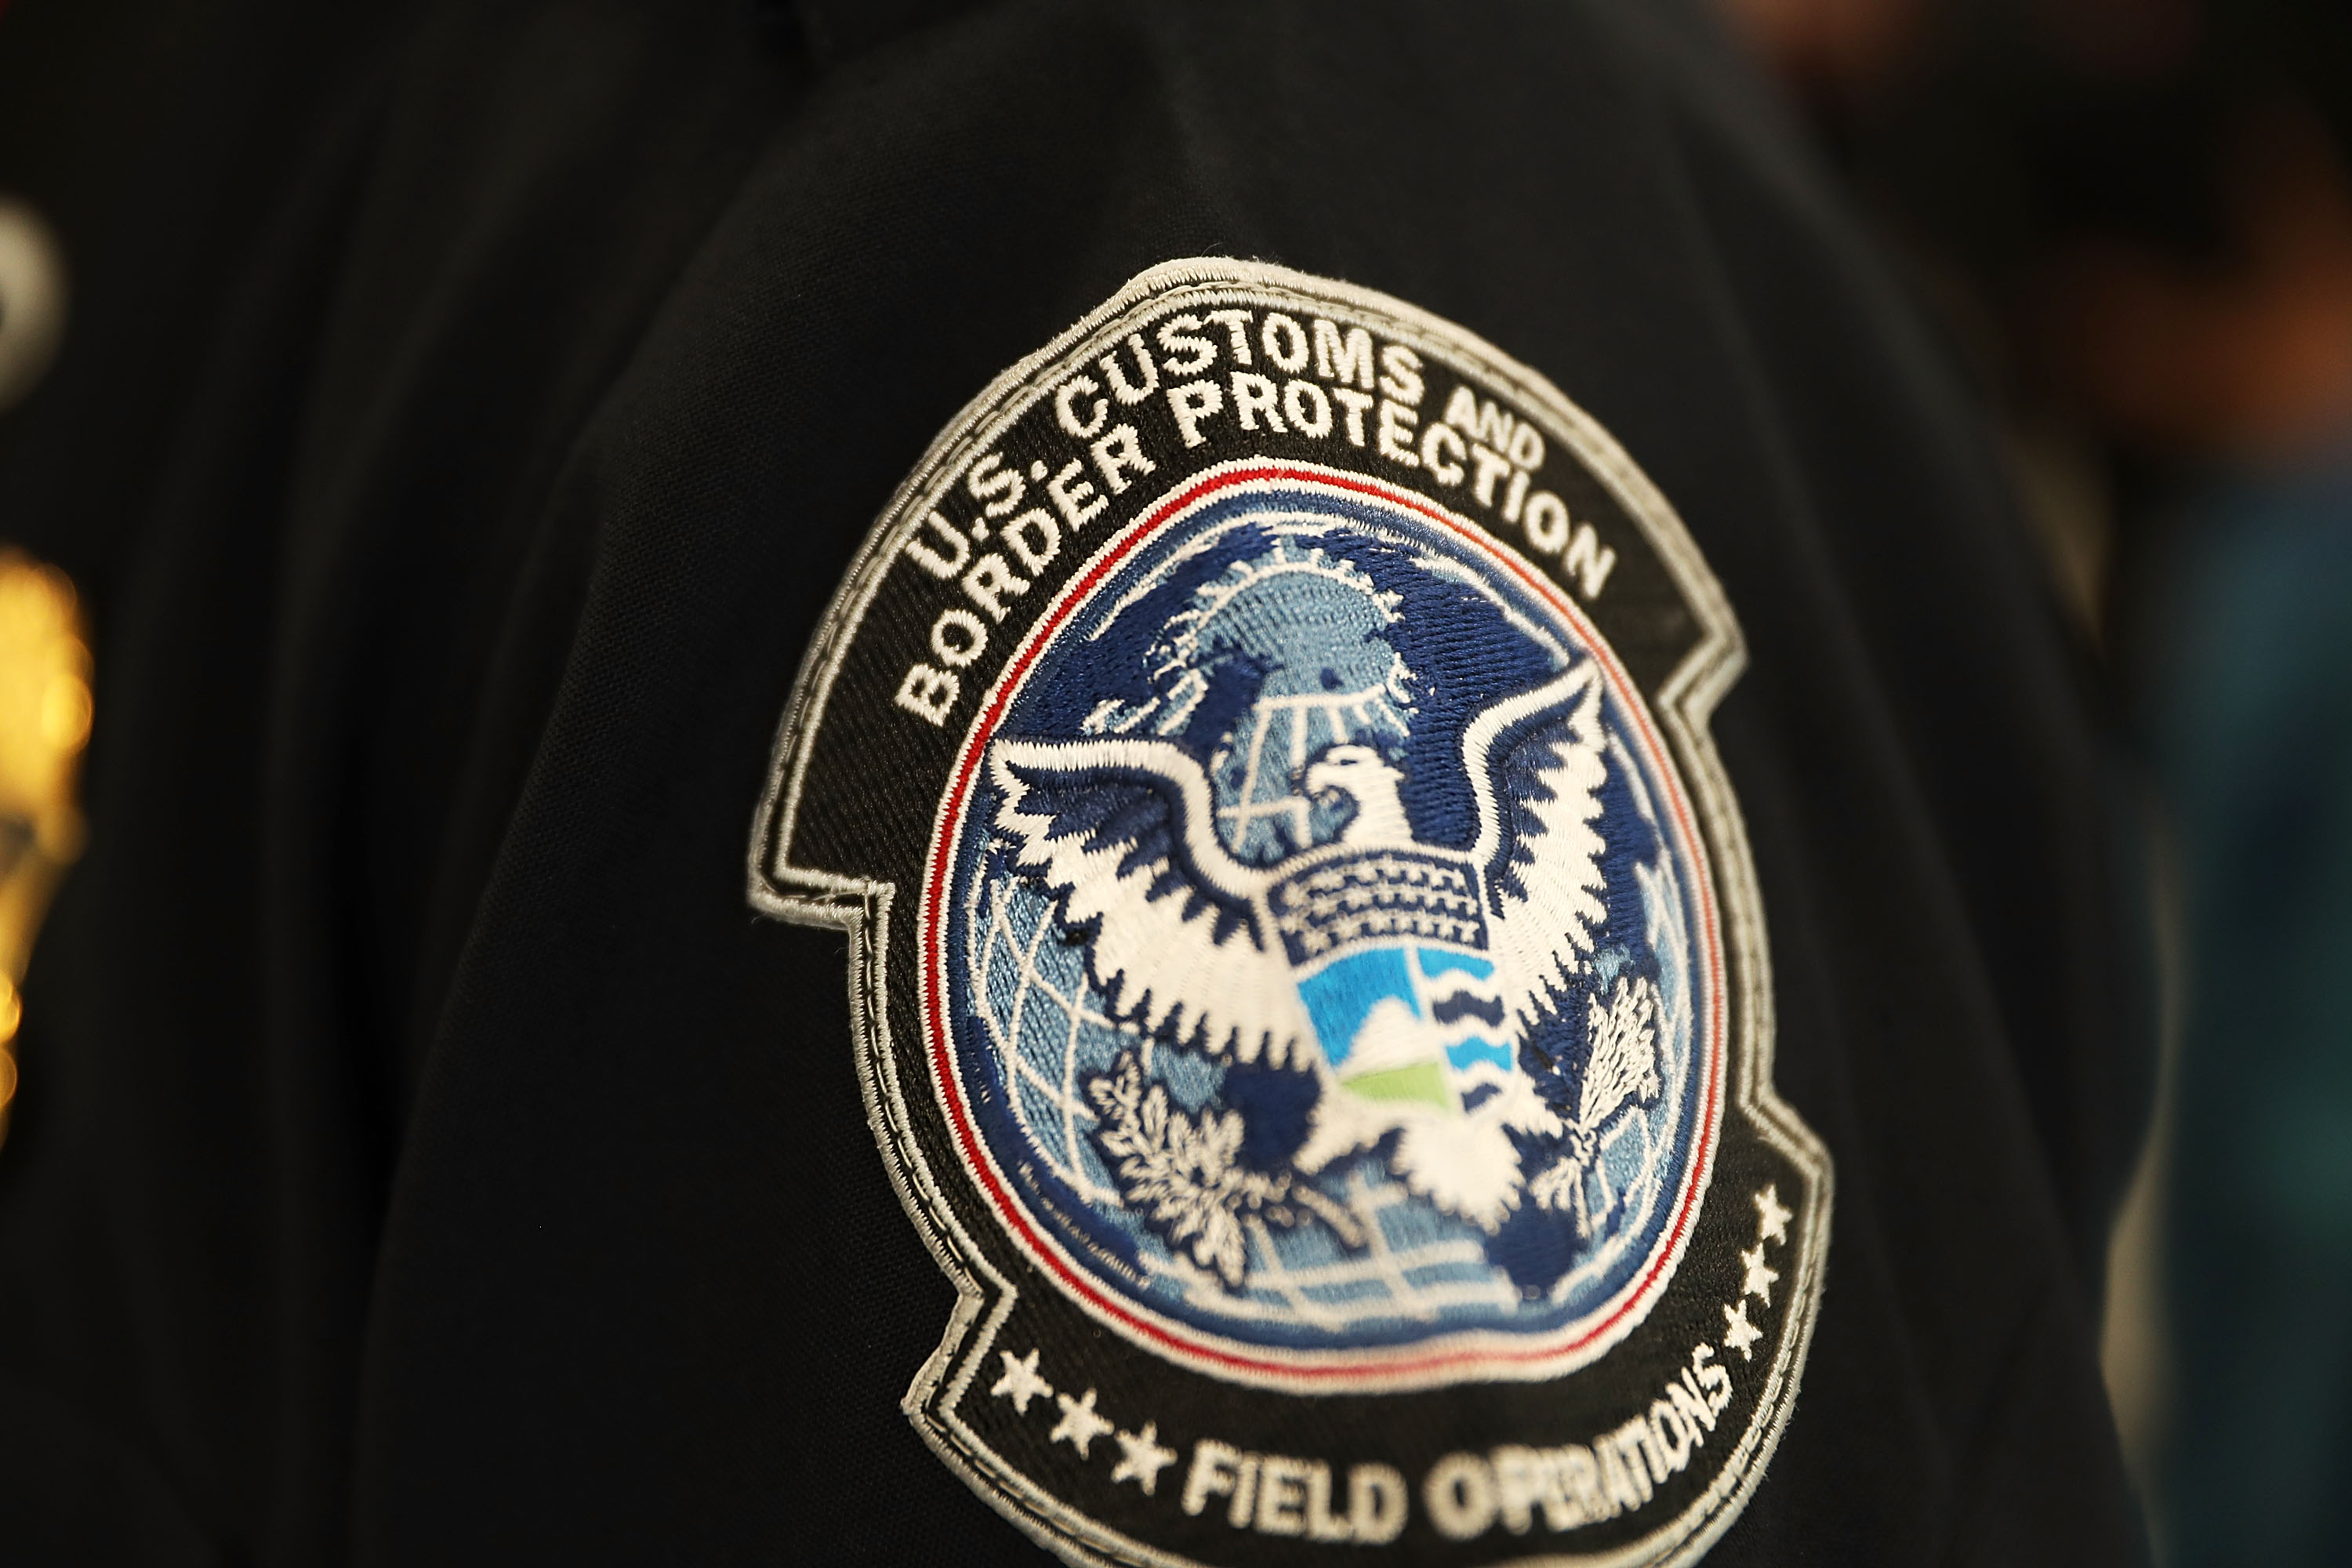 8-Year-Old Guatemalan Boy Dies in Custody of US Customs and Border Protection on Christmas